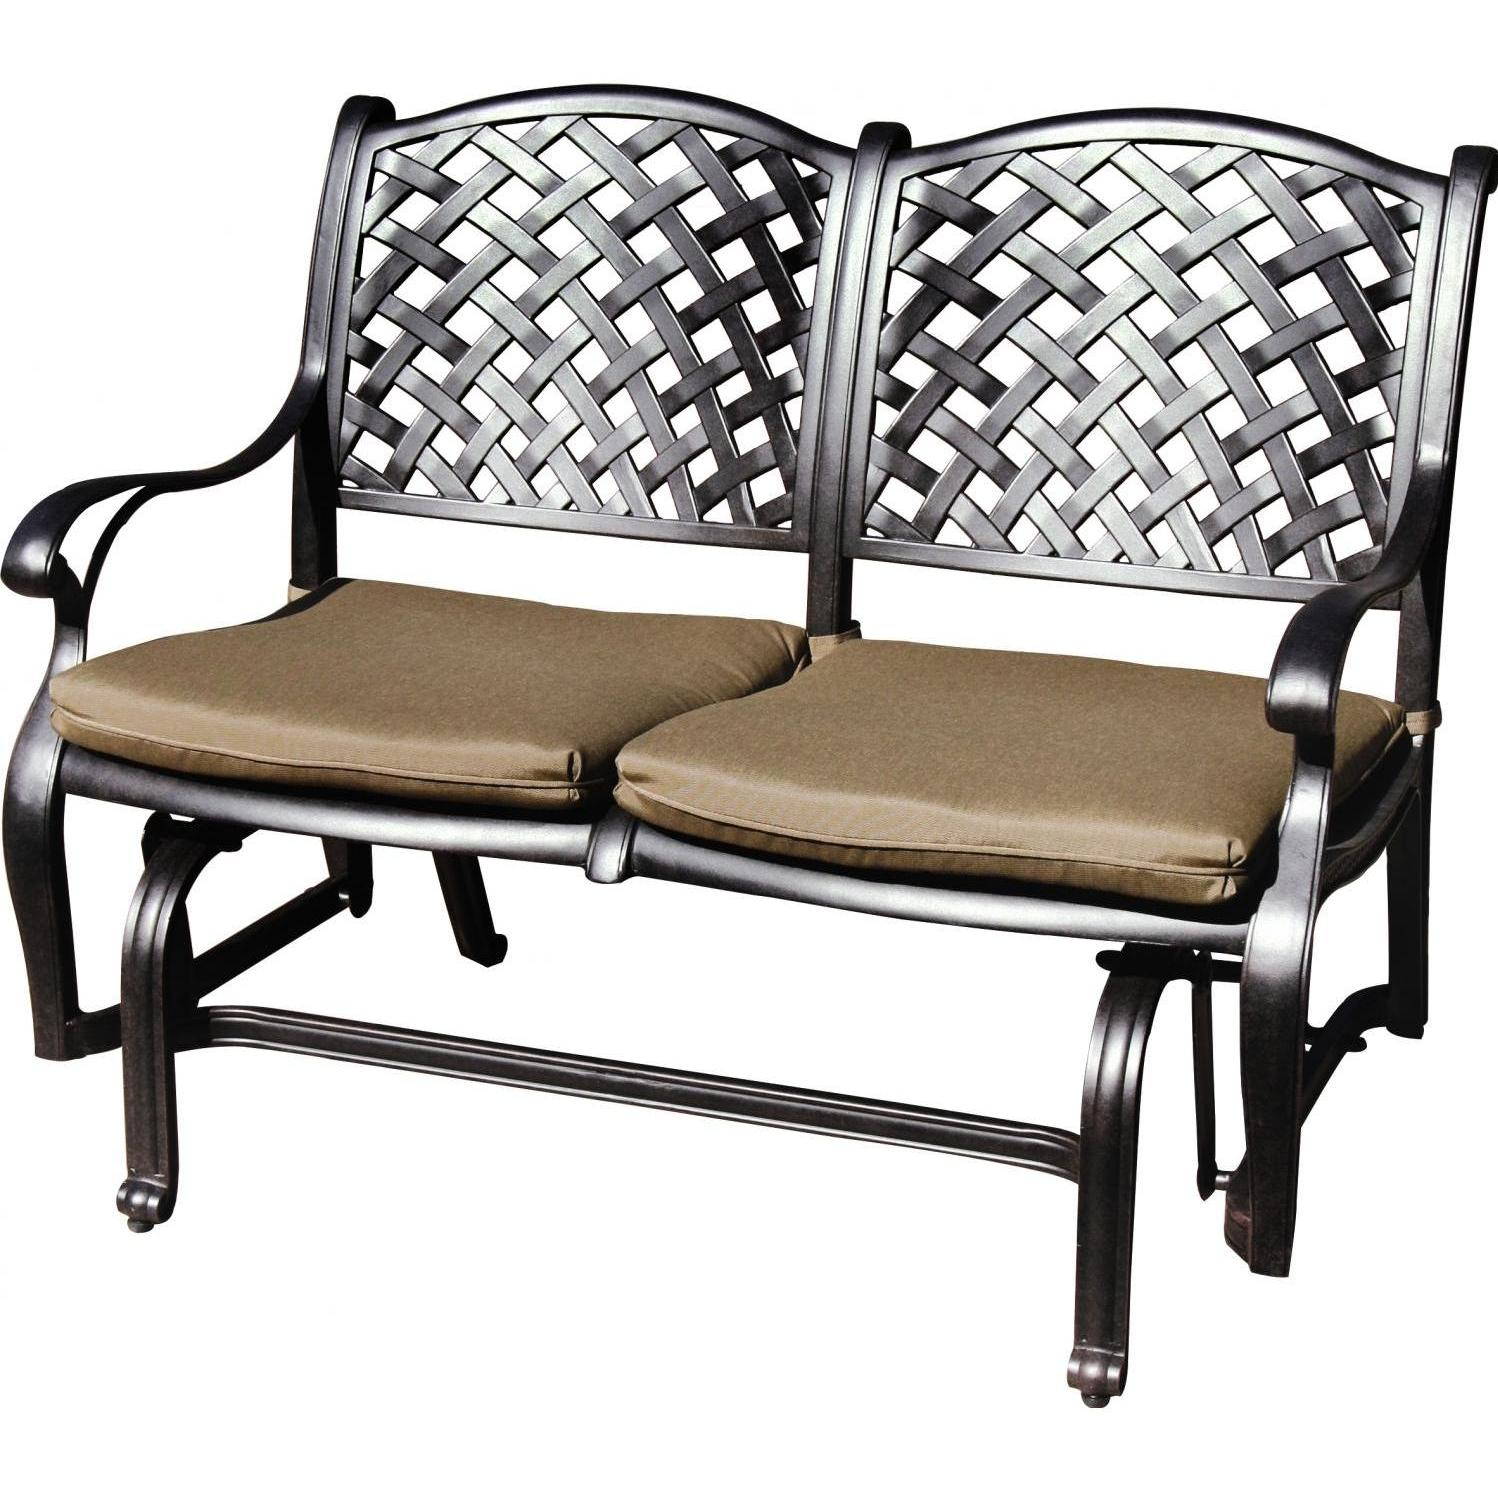 Darlee Nassau Cast Aluminum Patio Bench Glider Throughout Glider Benches With Cushion (View 5 of 25)